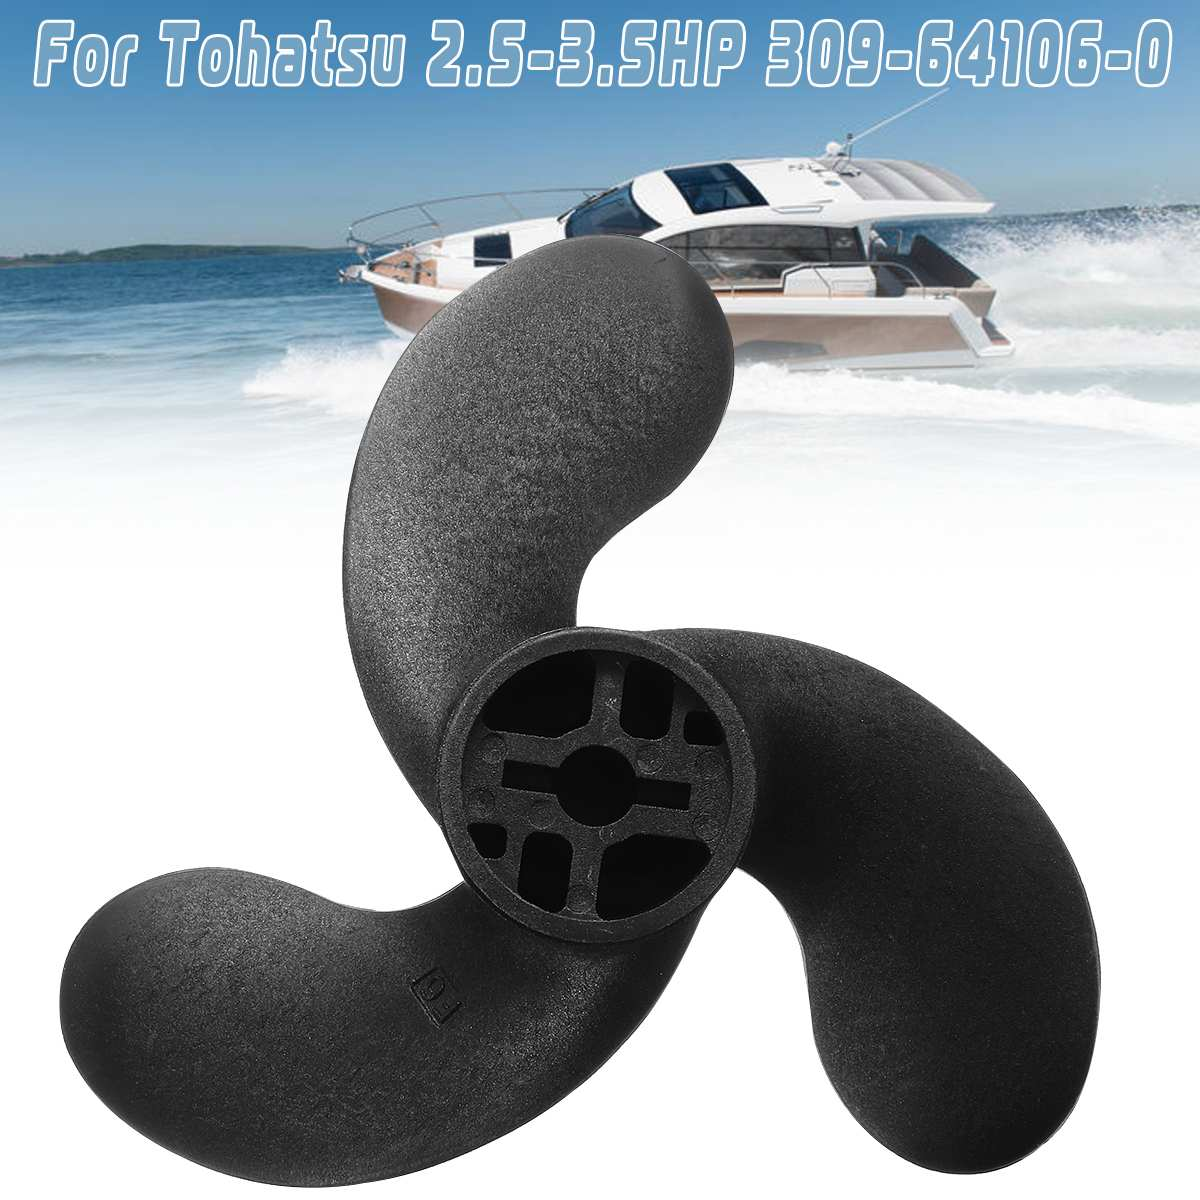 Boat Propeller 309-64107-0 7.4x5.7 For Nissan Tohatsu Evinrude Johnson 2.5-3.5HP 3 Blades R Rotation Composite Plastic Material